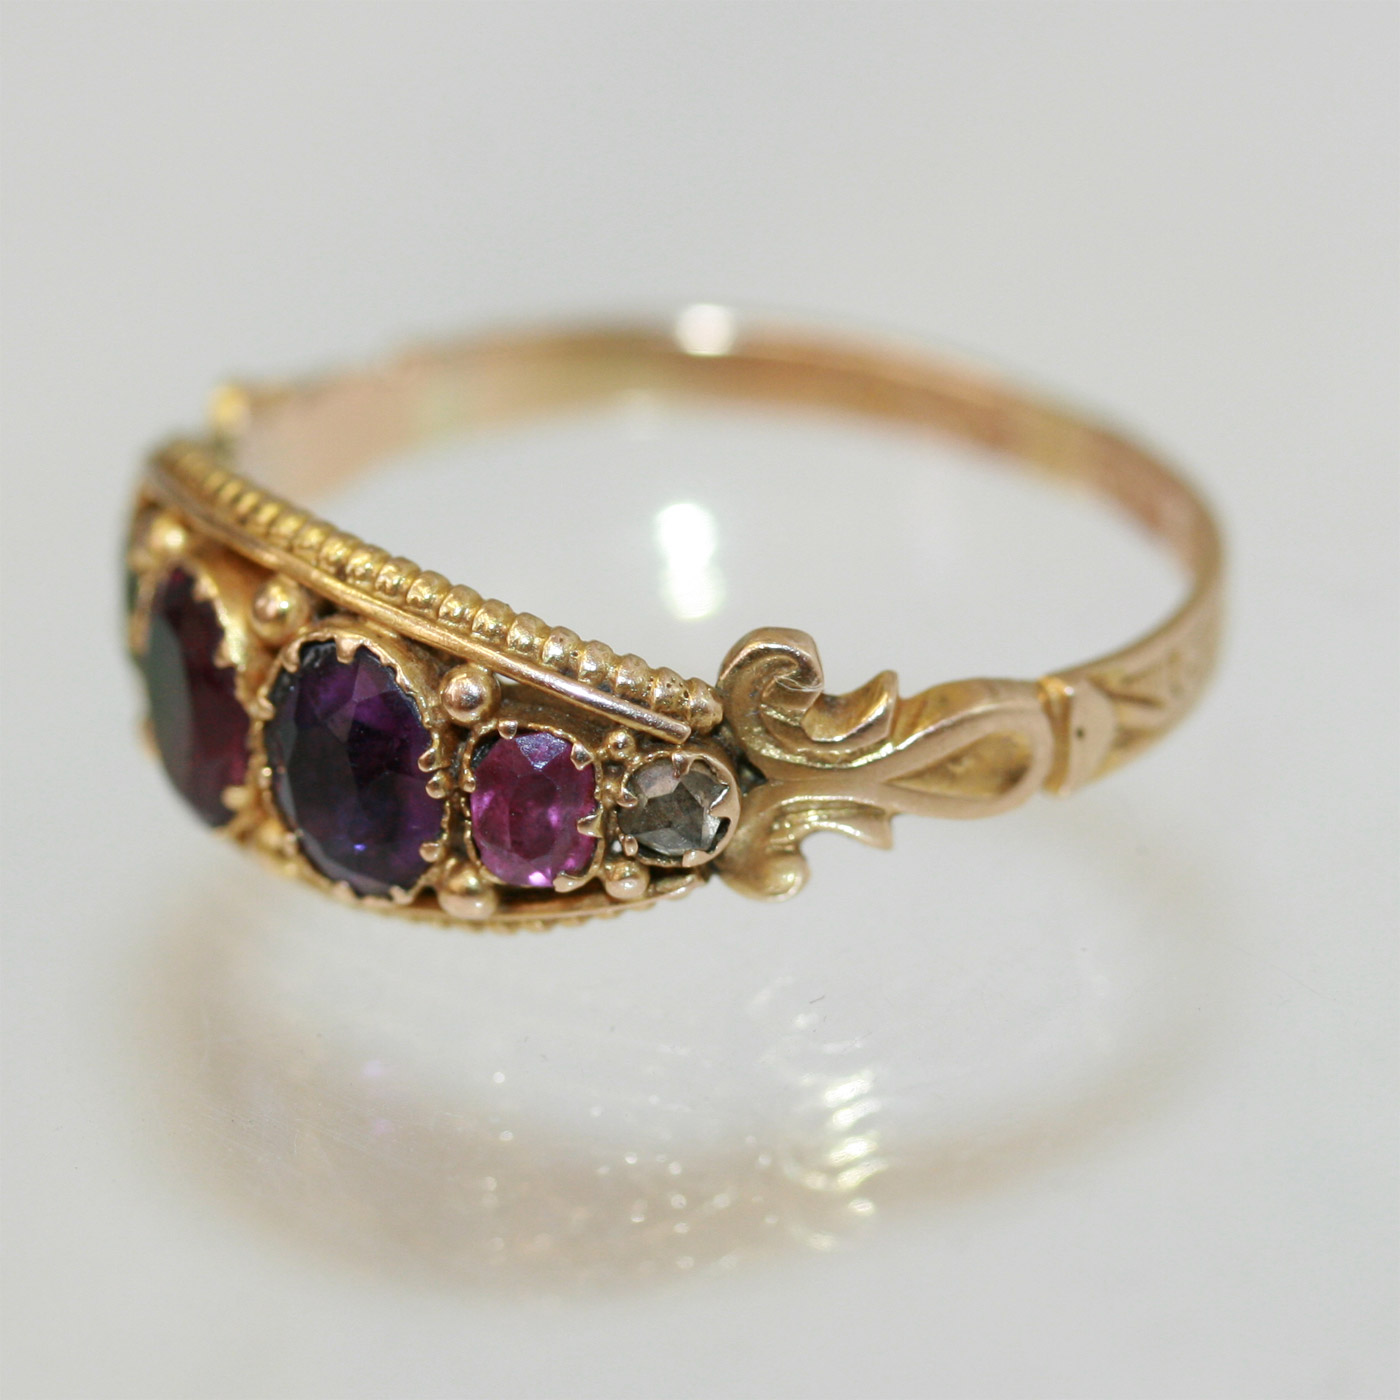 Buy Antique Victorian REGARD Ring Sold Items Sold Rings